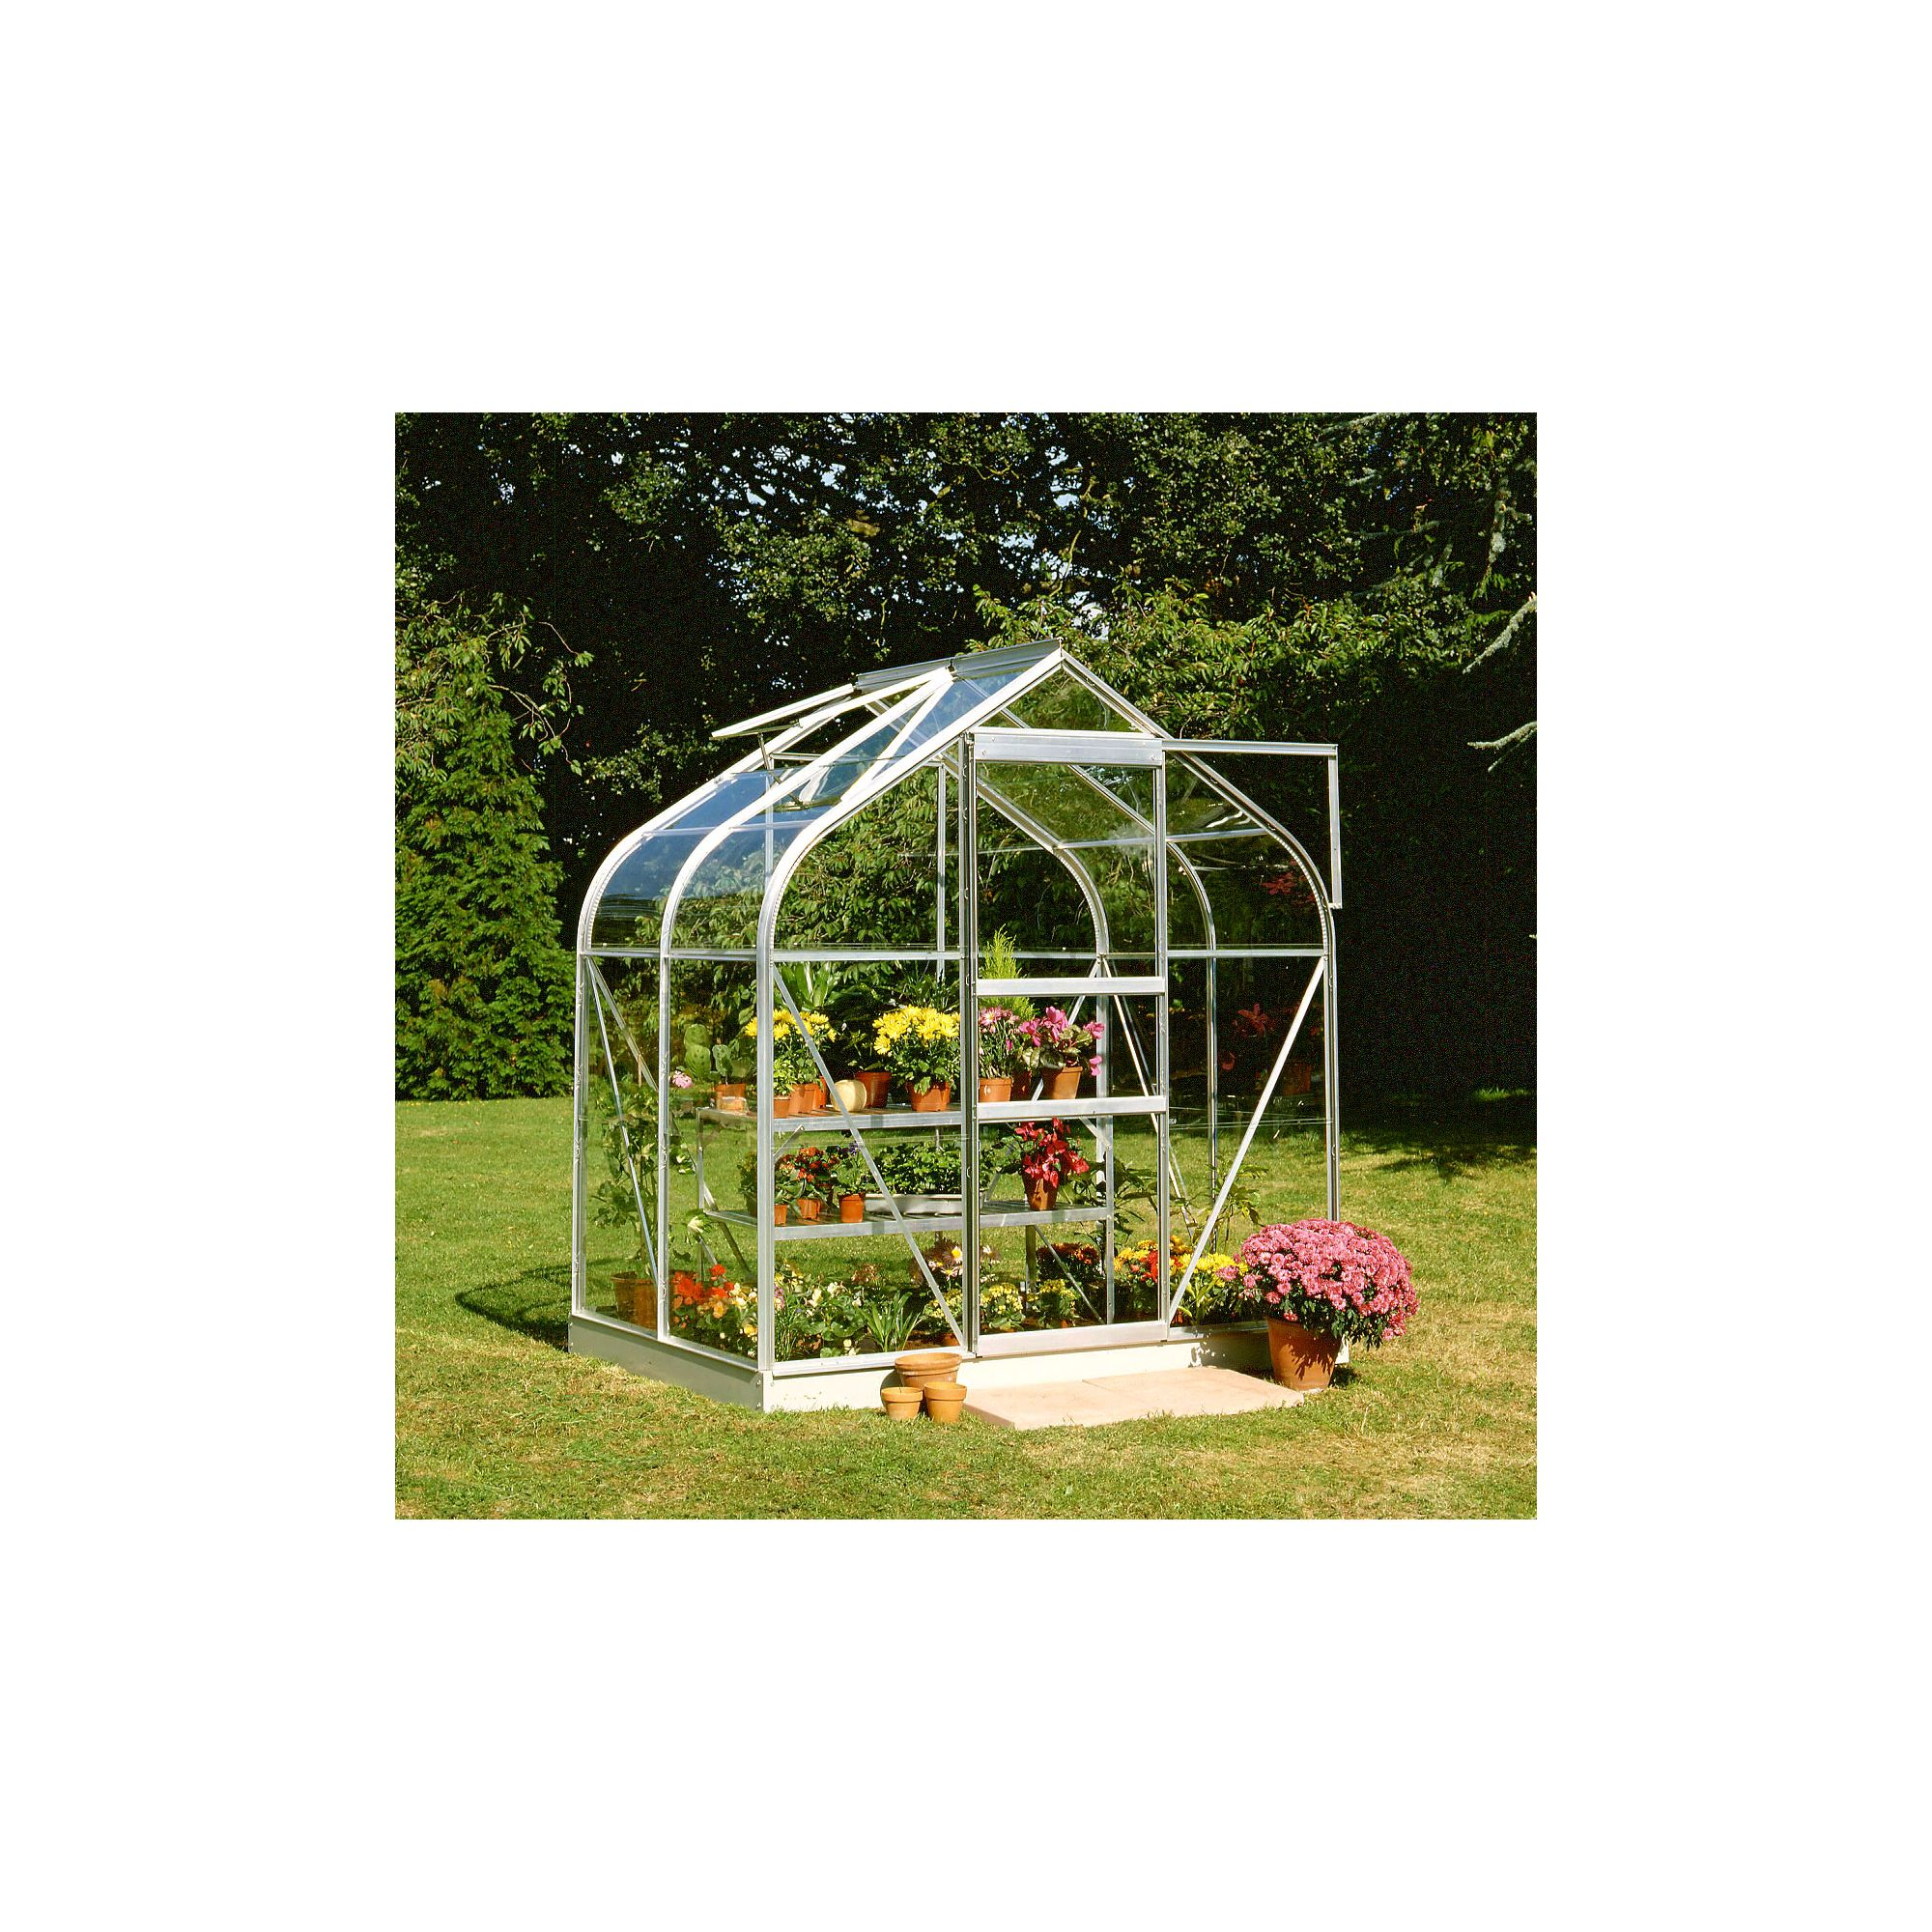 Halls 4x6 Curved Aluminium Greenhouse + Base - Horticultural Glass at Tesco Direct